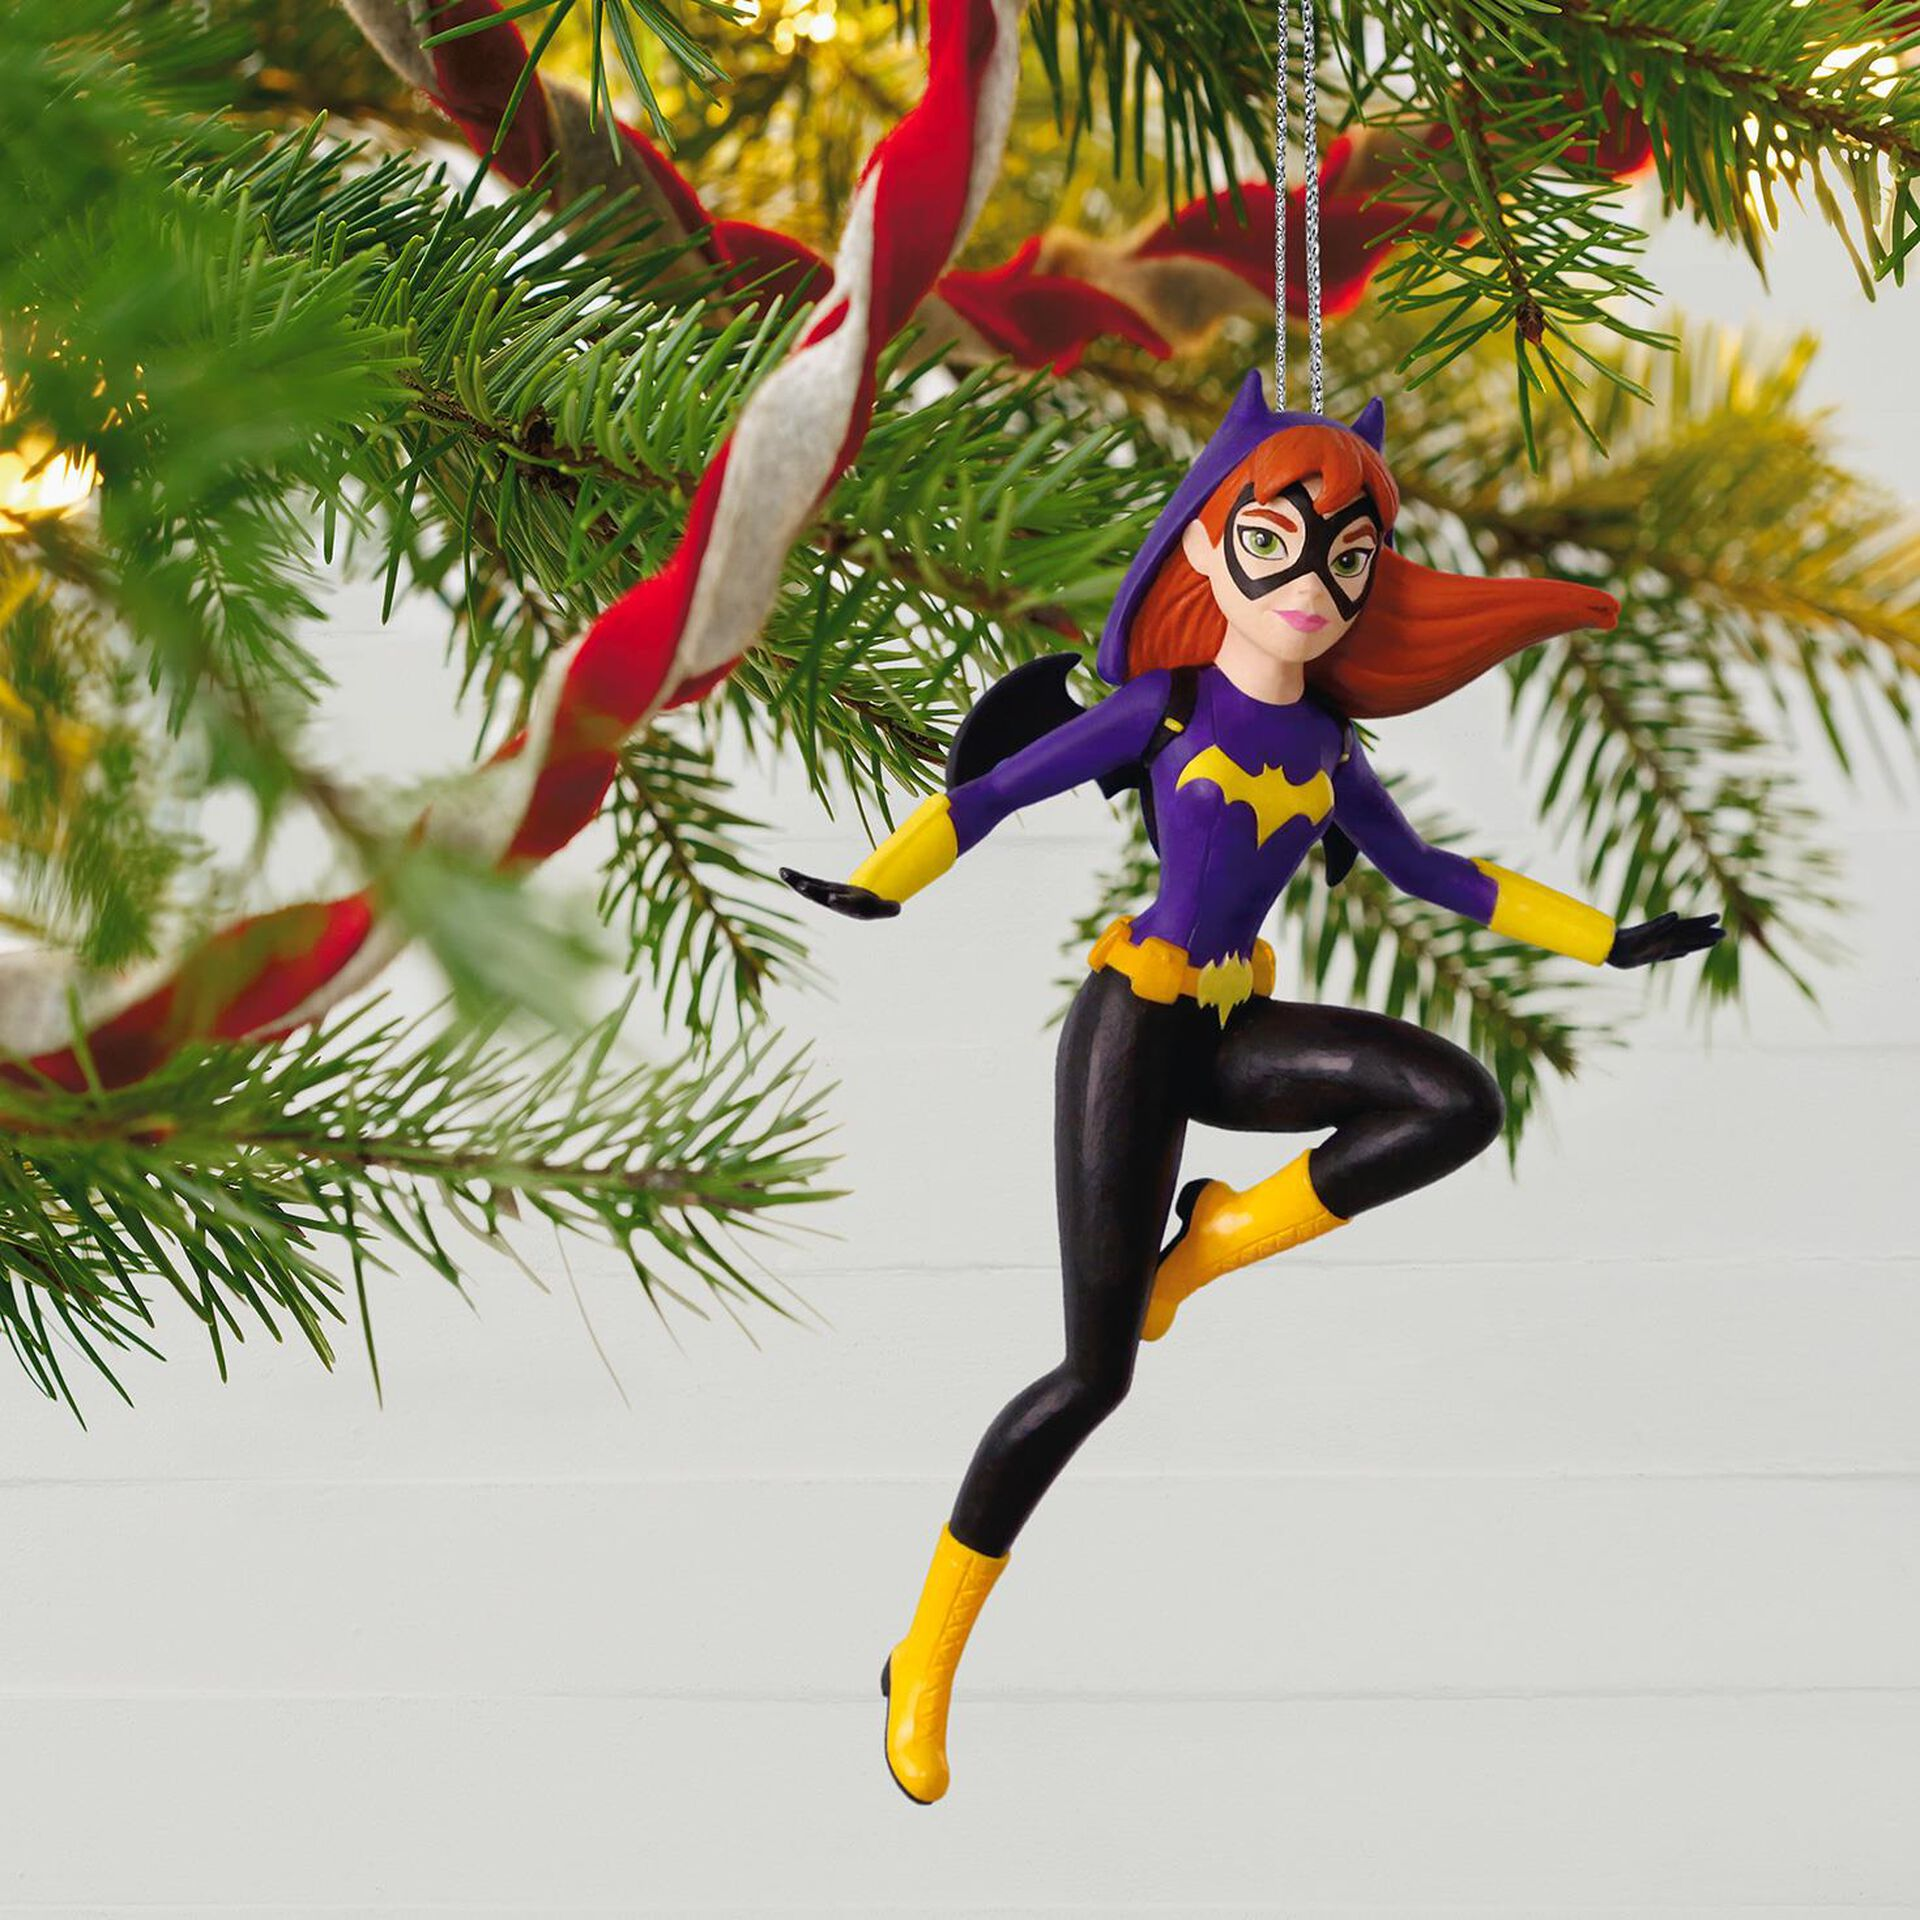 Hallmark Keepsake DC Super Hero Girls Batgirl Ornament Movies /& TV Superheroes